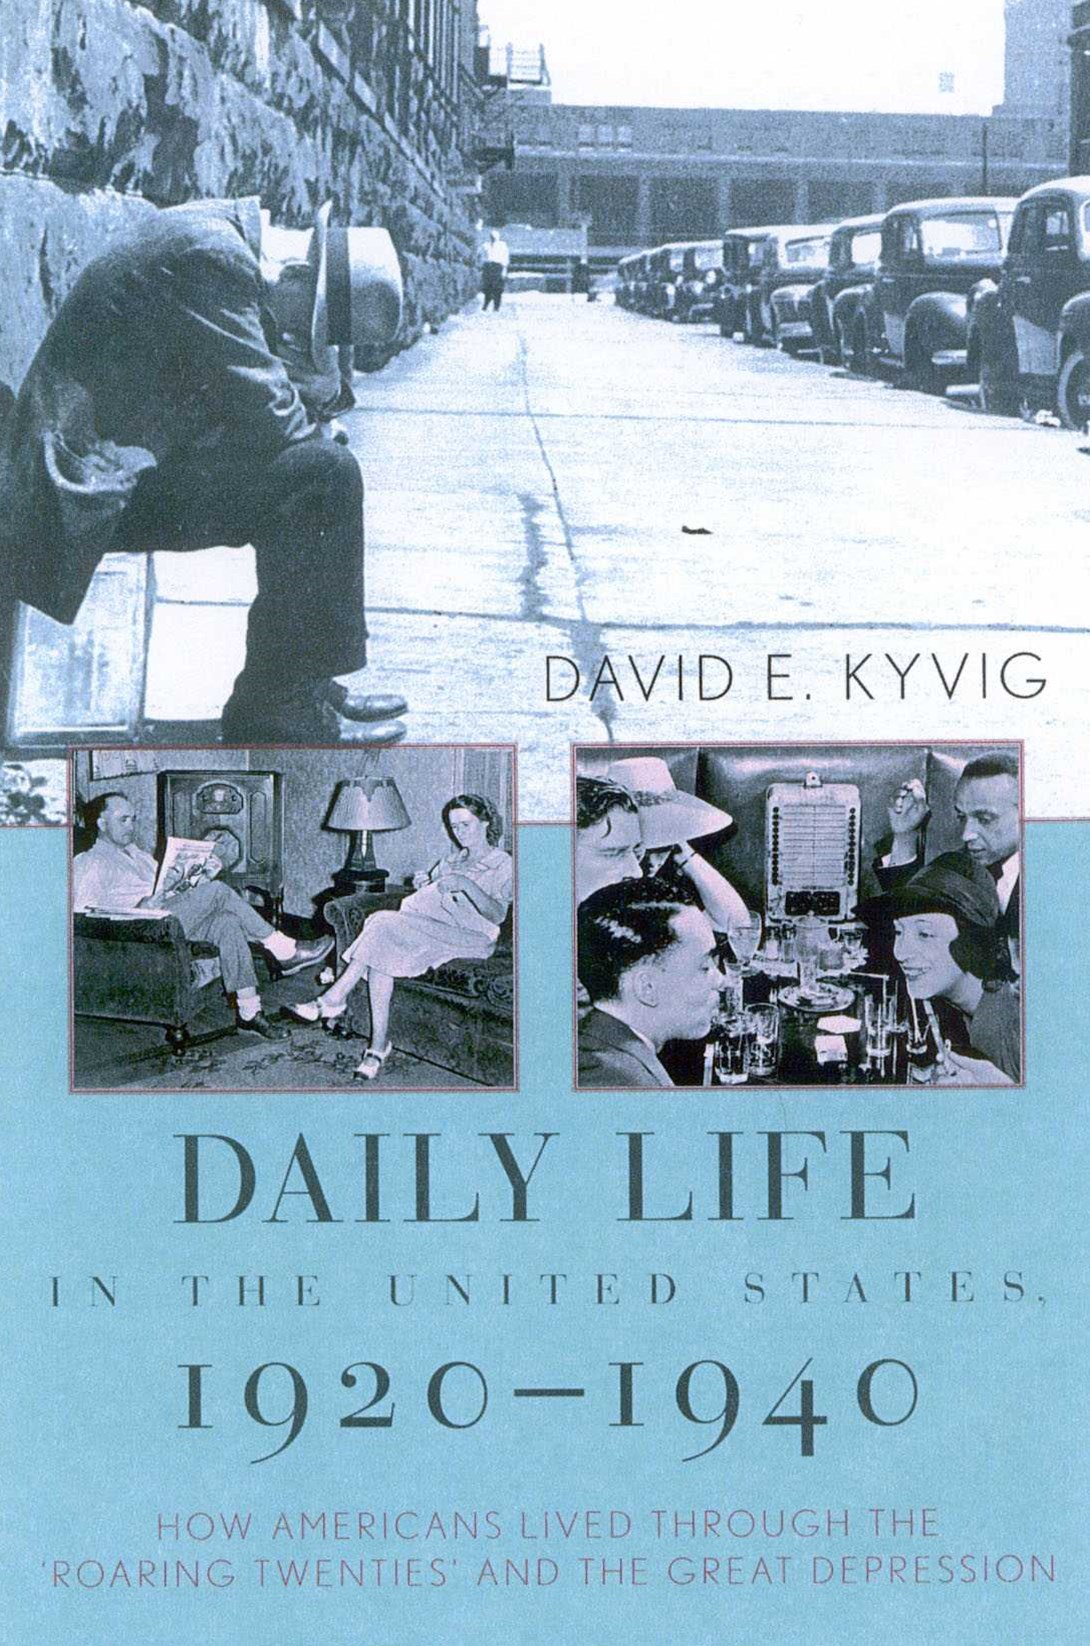 Daily Life in the United States, 1920-1940